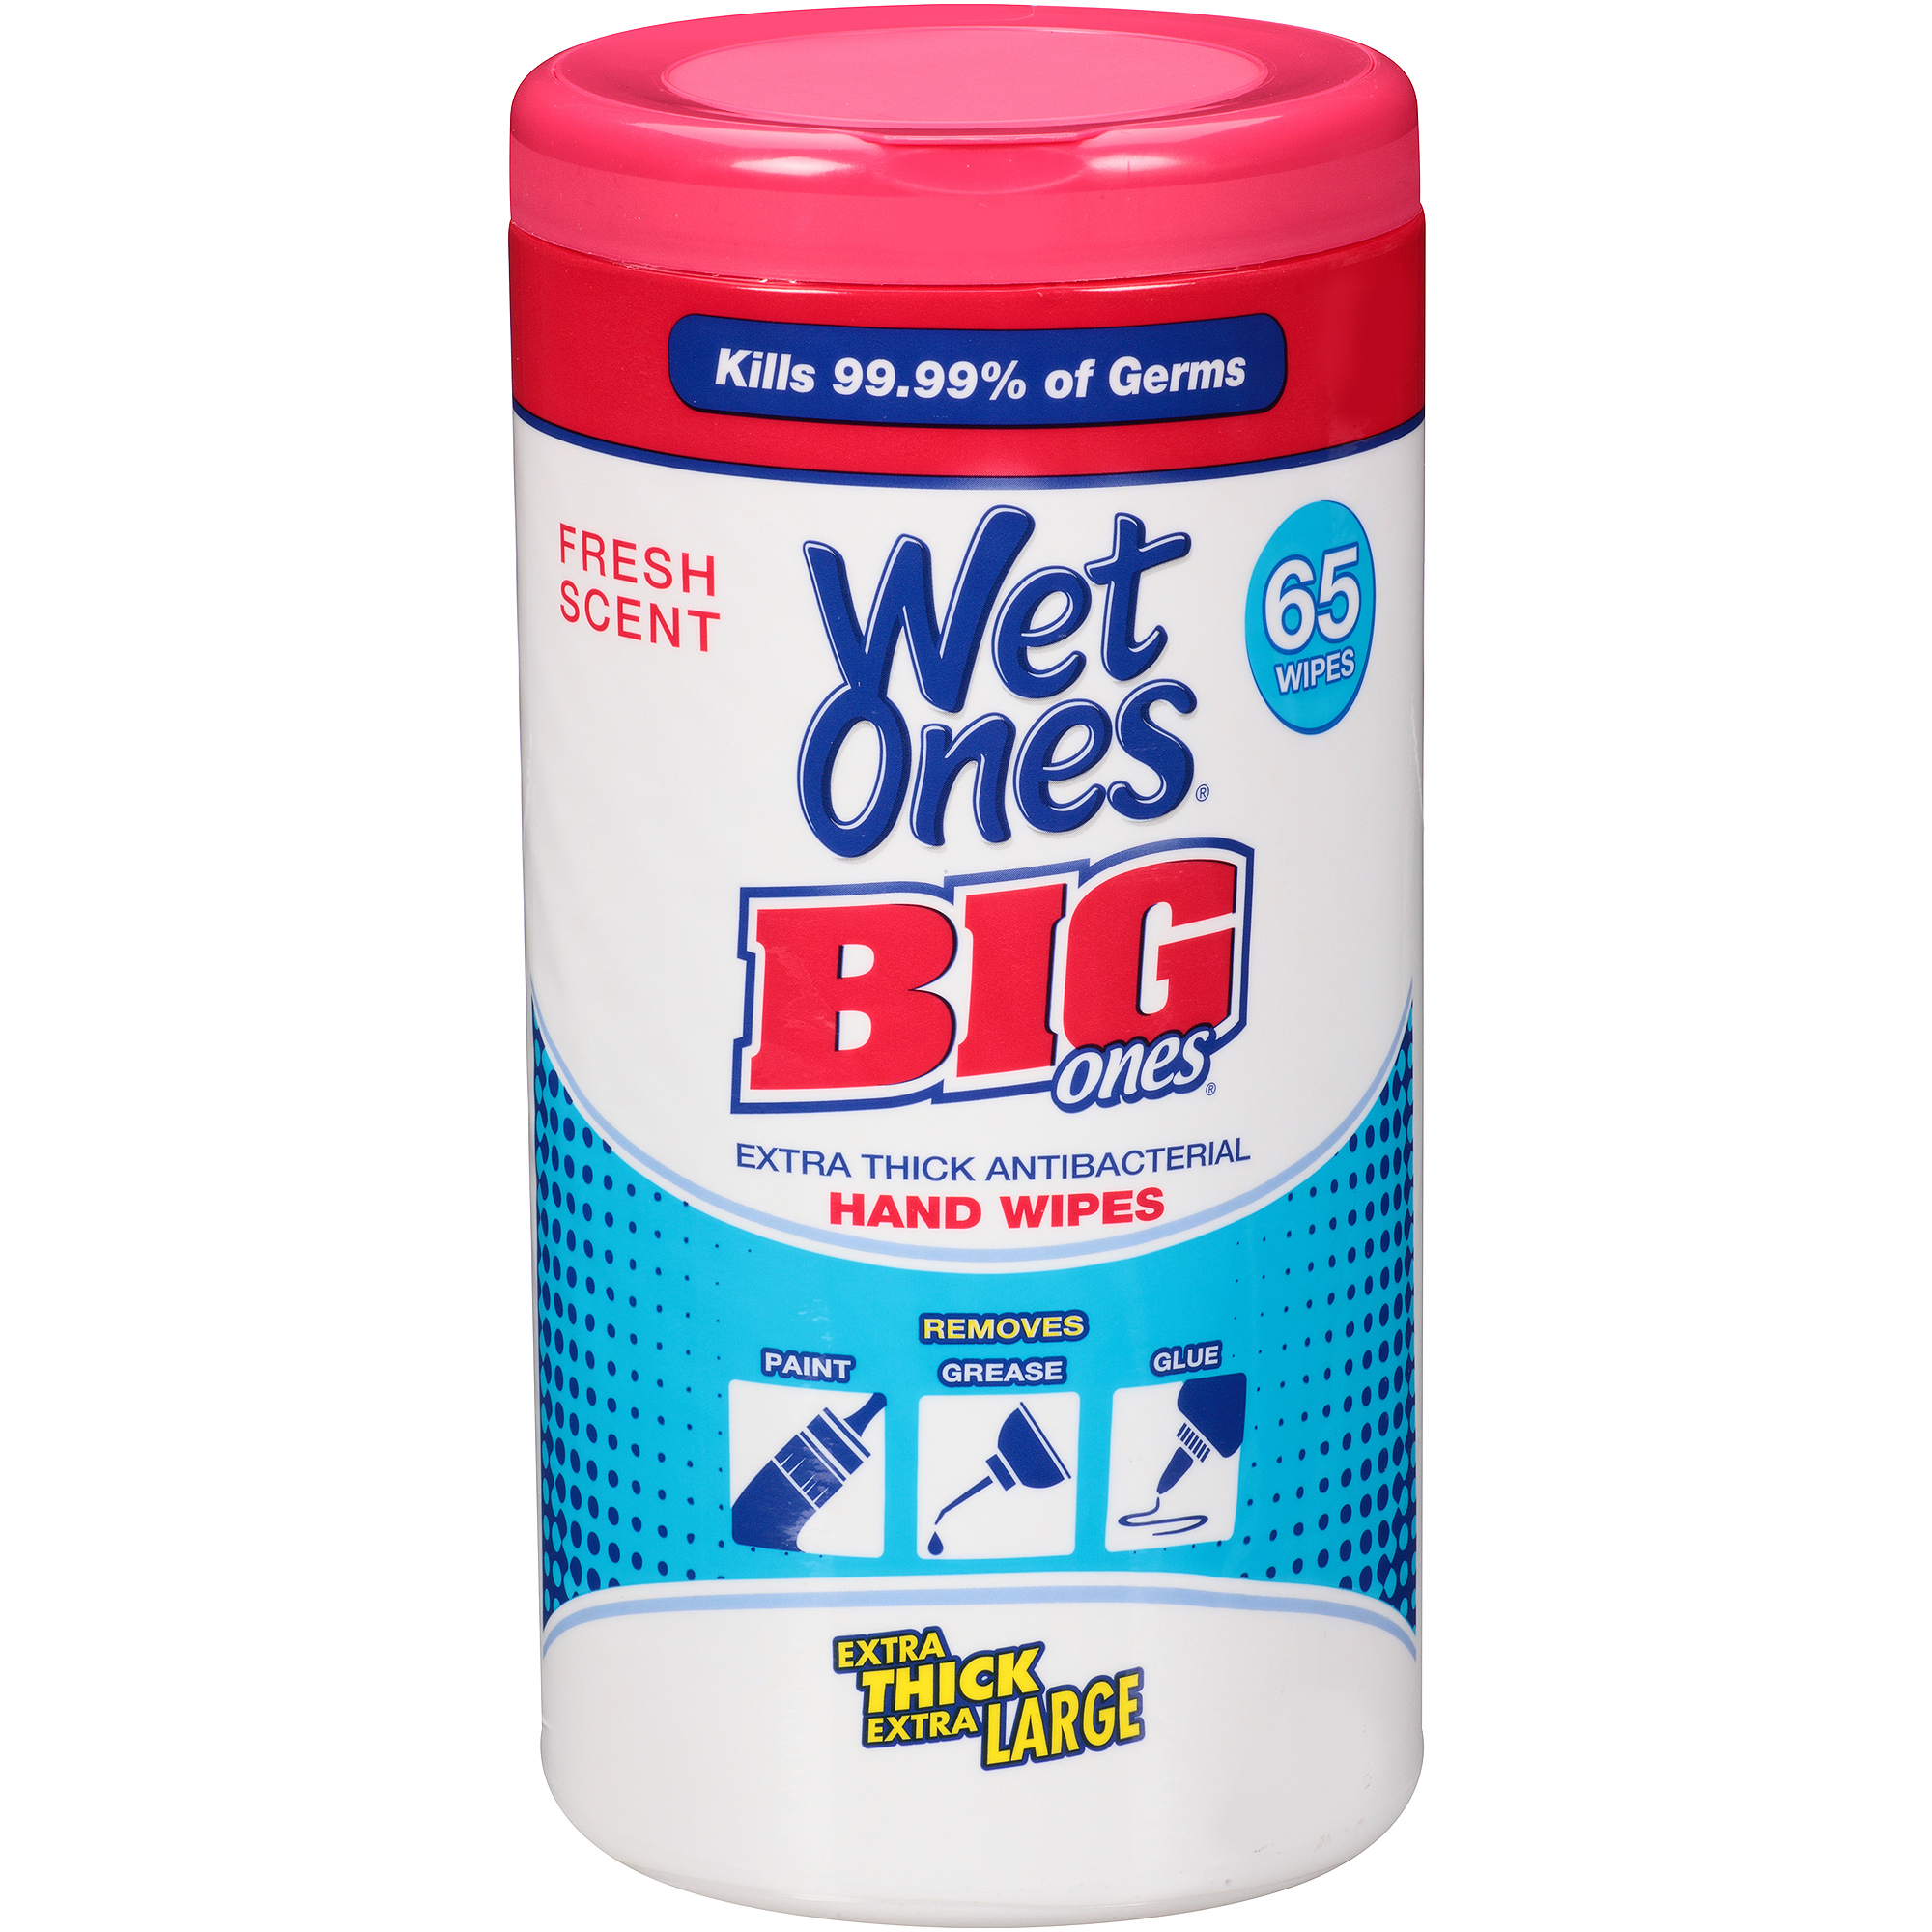 Wet Ones Big Ones Extra Thick Fresh Scent Antibacterial Hand Wipes, 65 wipes